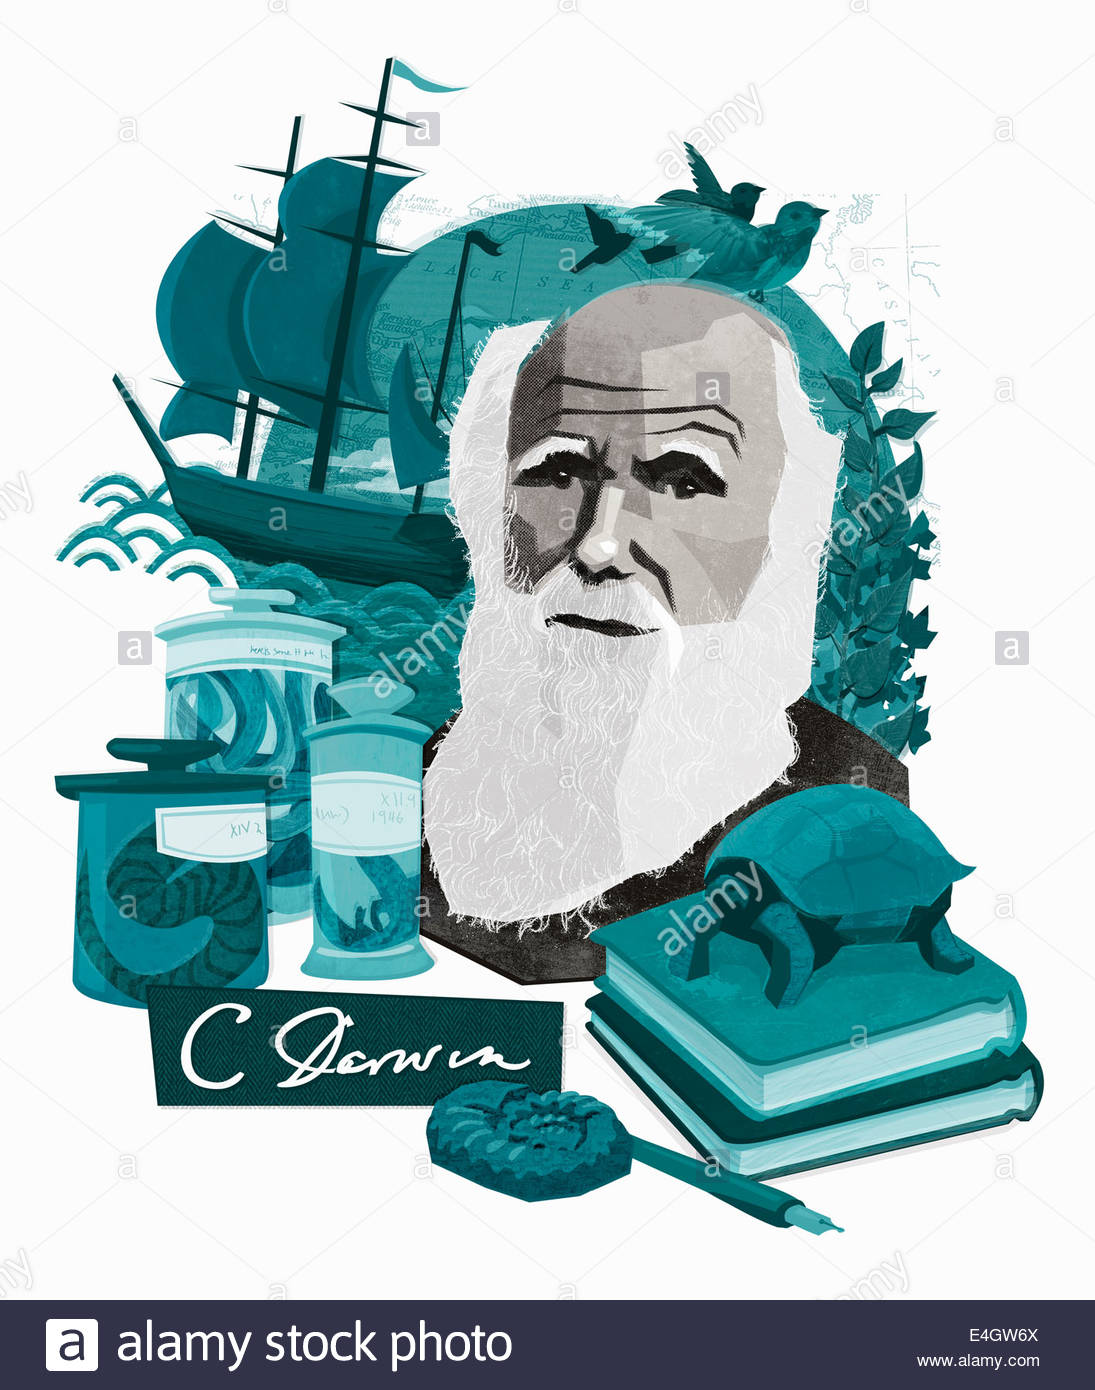 Montage of Charles Darwin, natural science and discovery - Stock Image